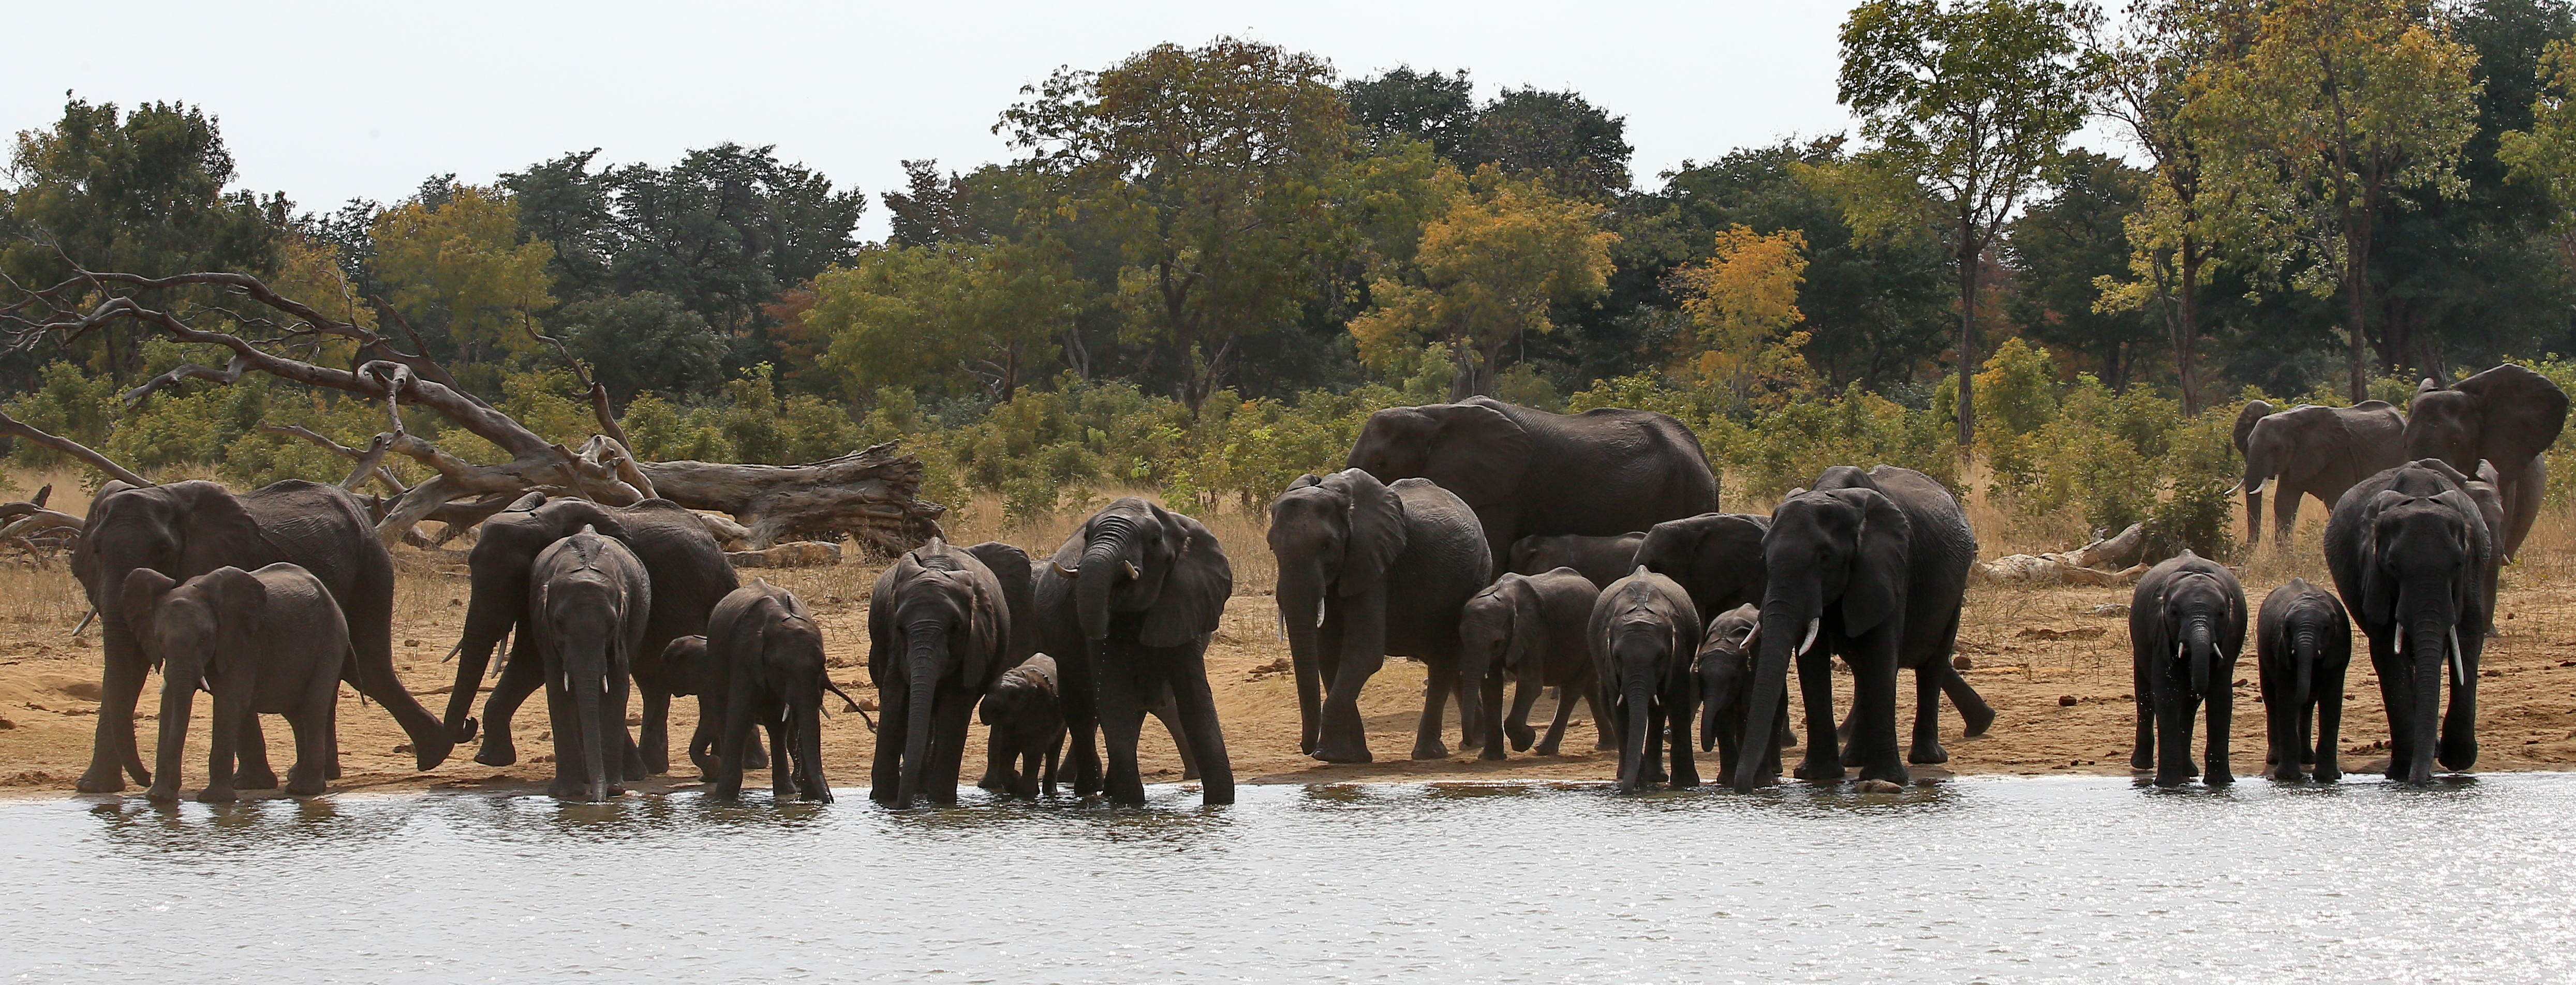 Wild elephants photo